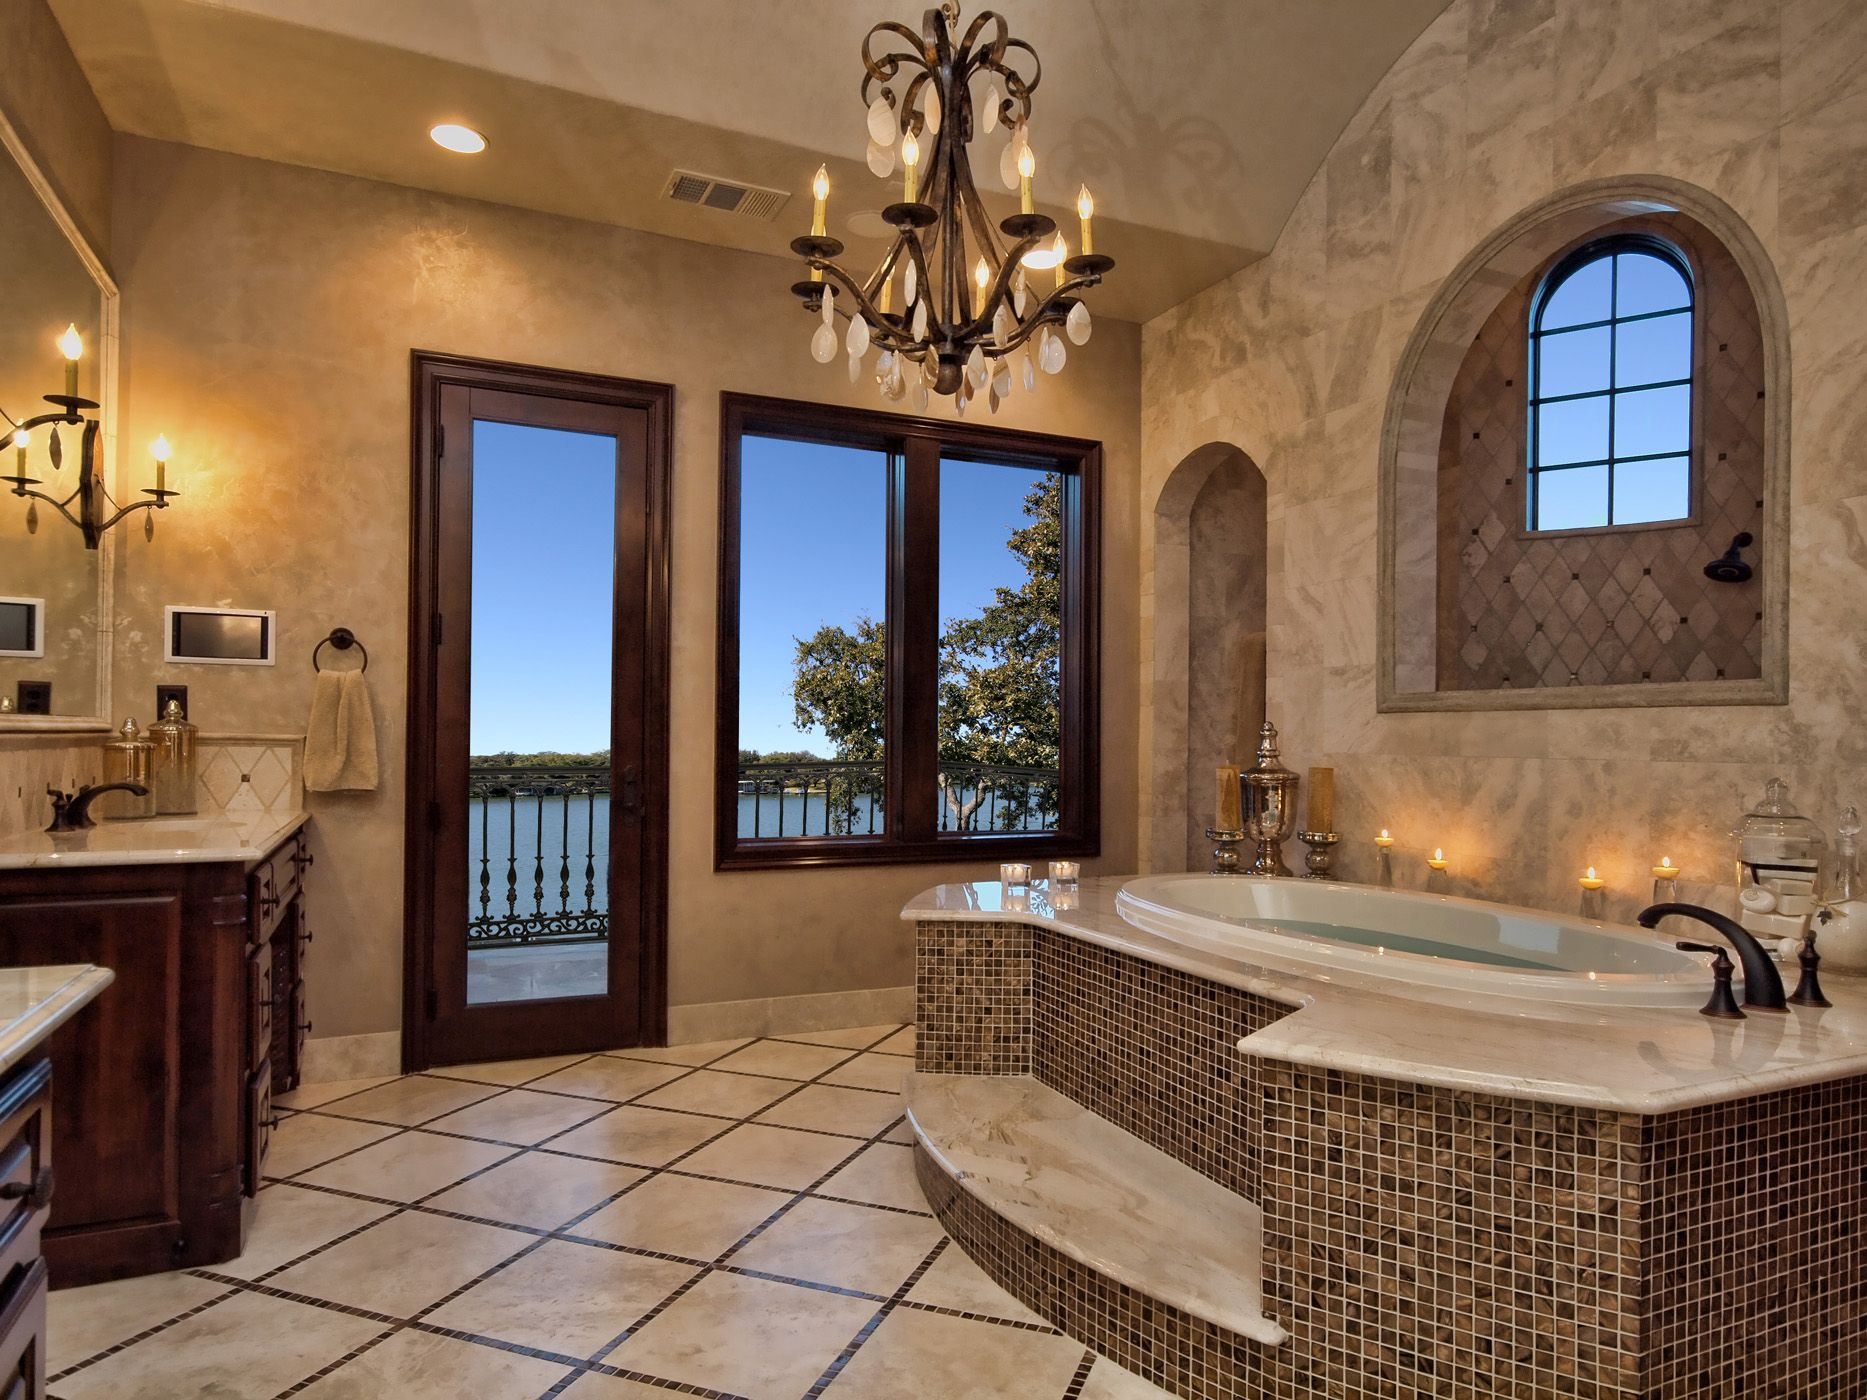 Luxury Master Bathroom Designs 21 luxury mediterranean bathroom design ideas | luxury master